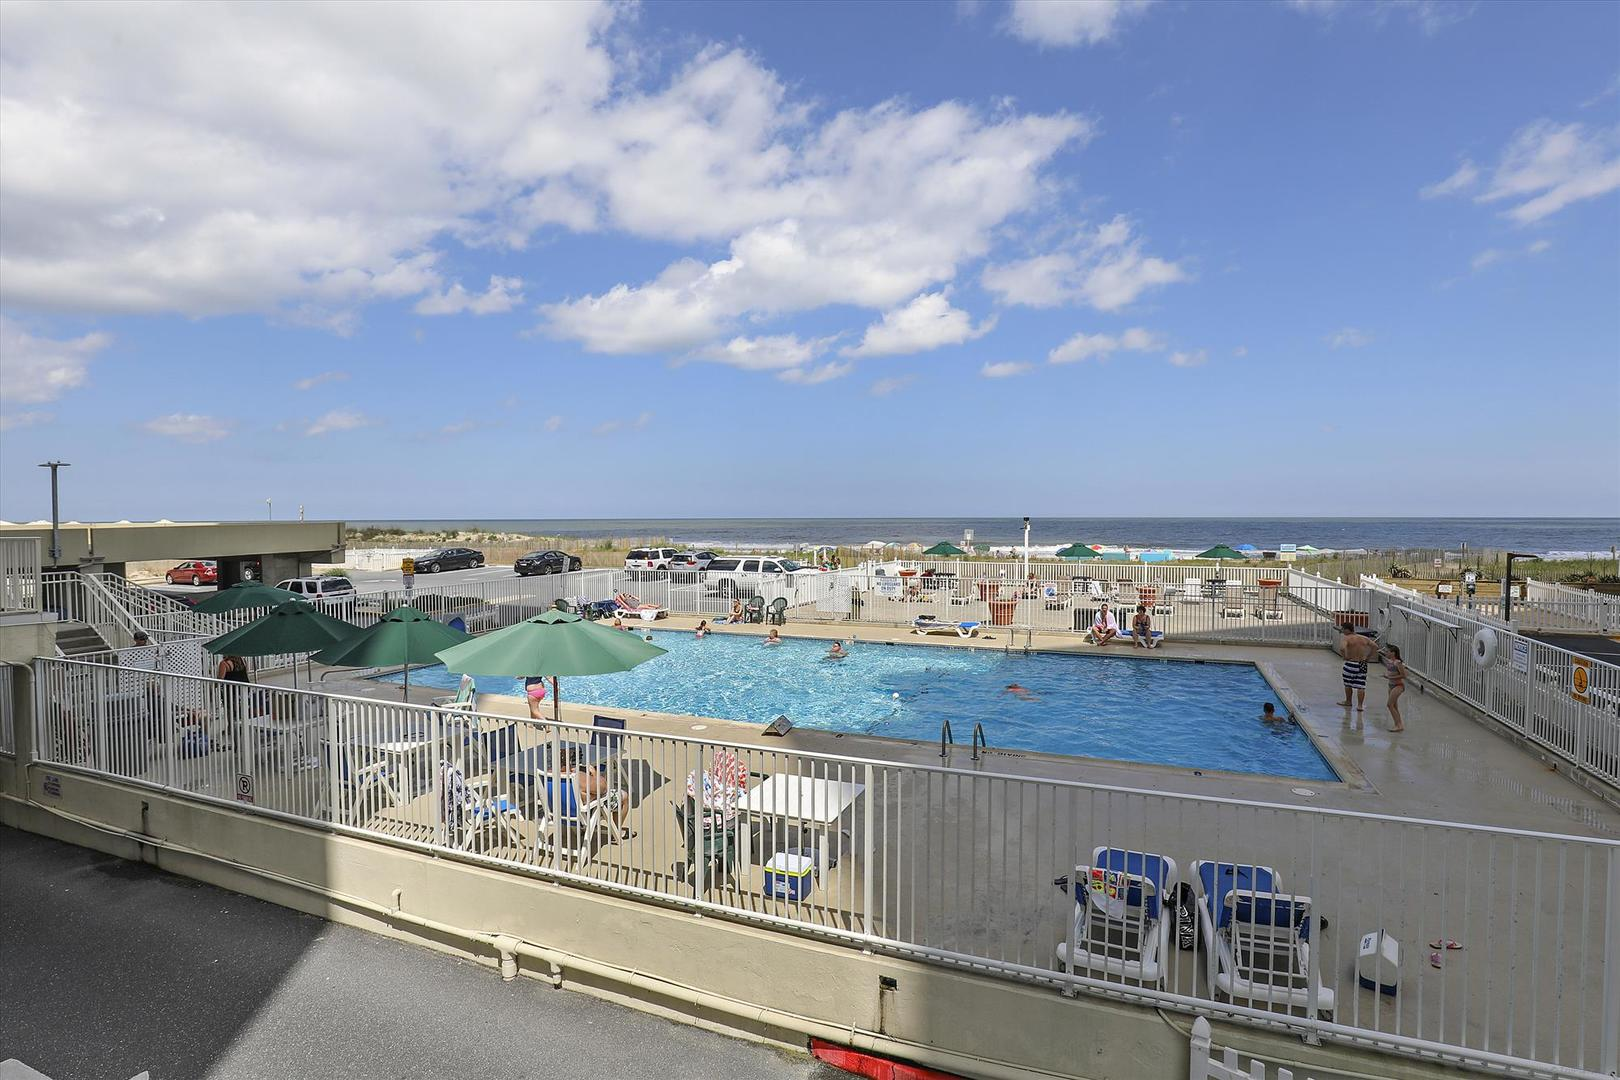 Quay - Outdoor Pool